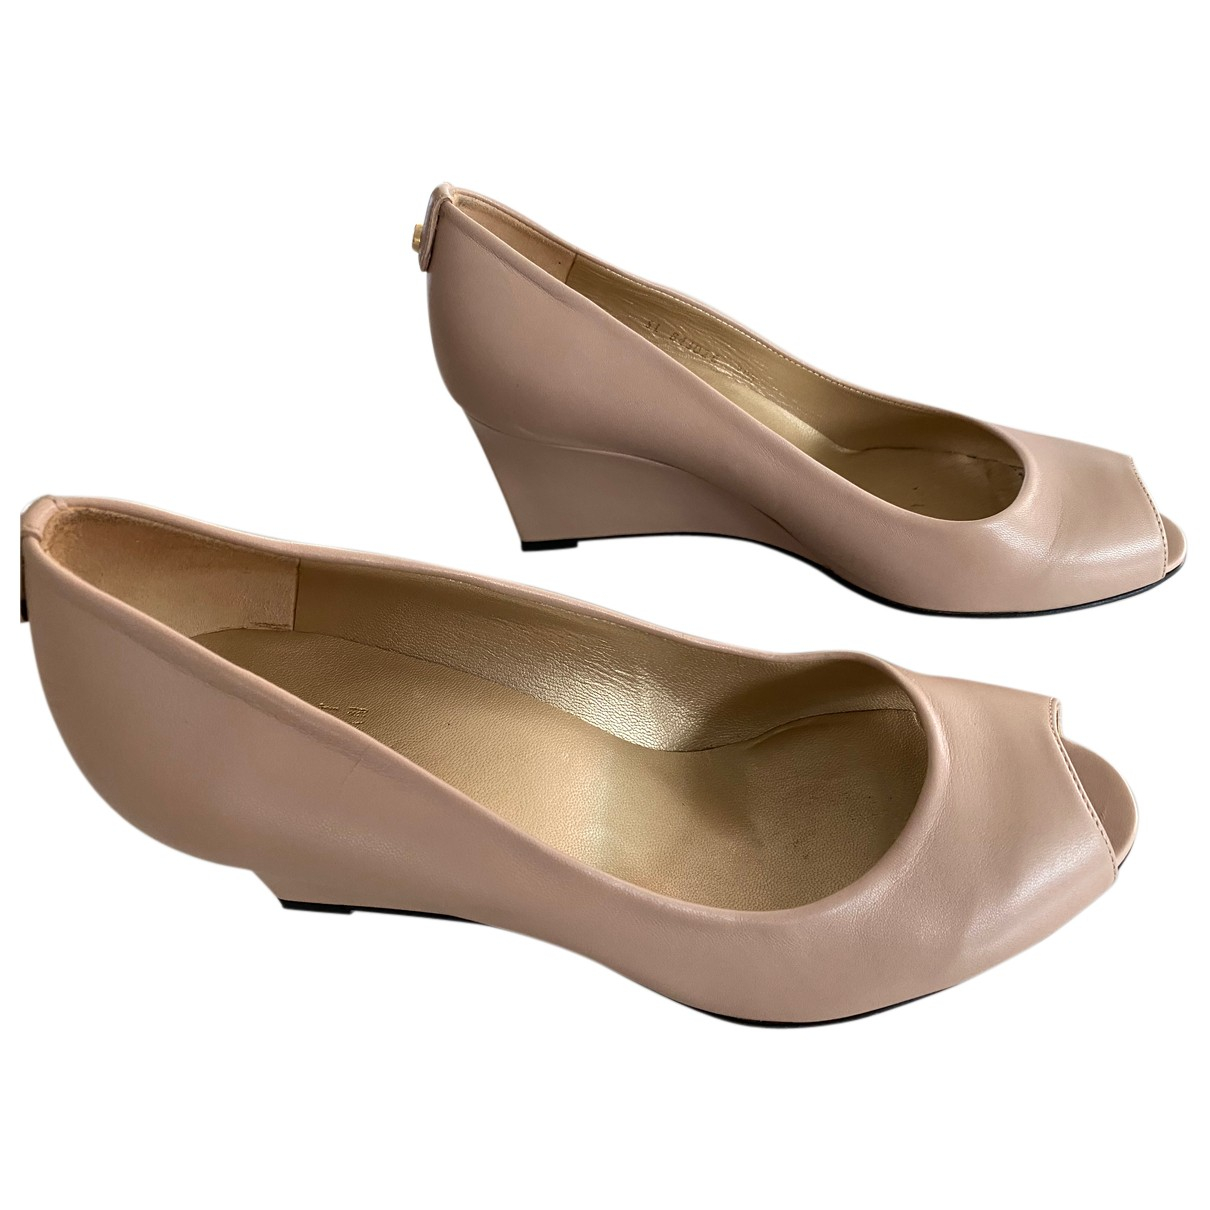 Stuart Weitzman N Beige Leather Heels for Women 39.5 EU